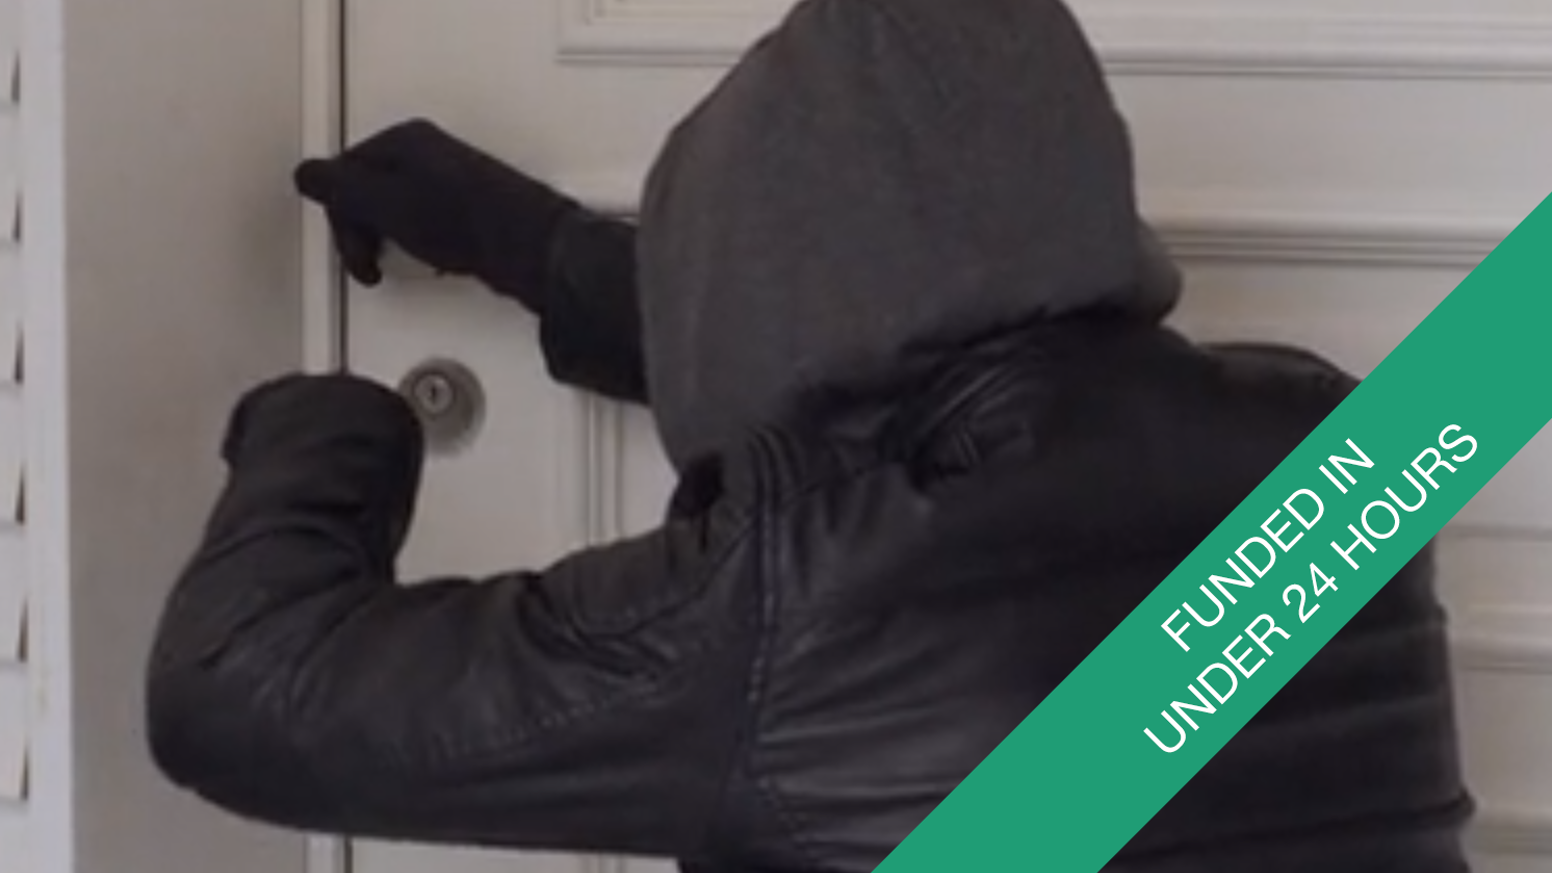 Your virtual roommate against burglars: Kevin by mitipi